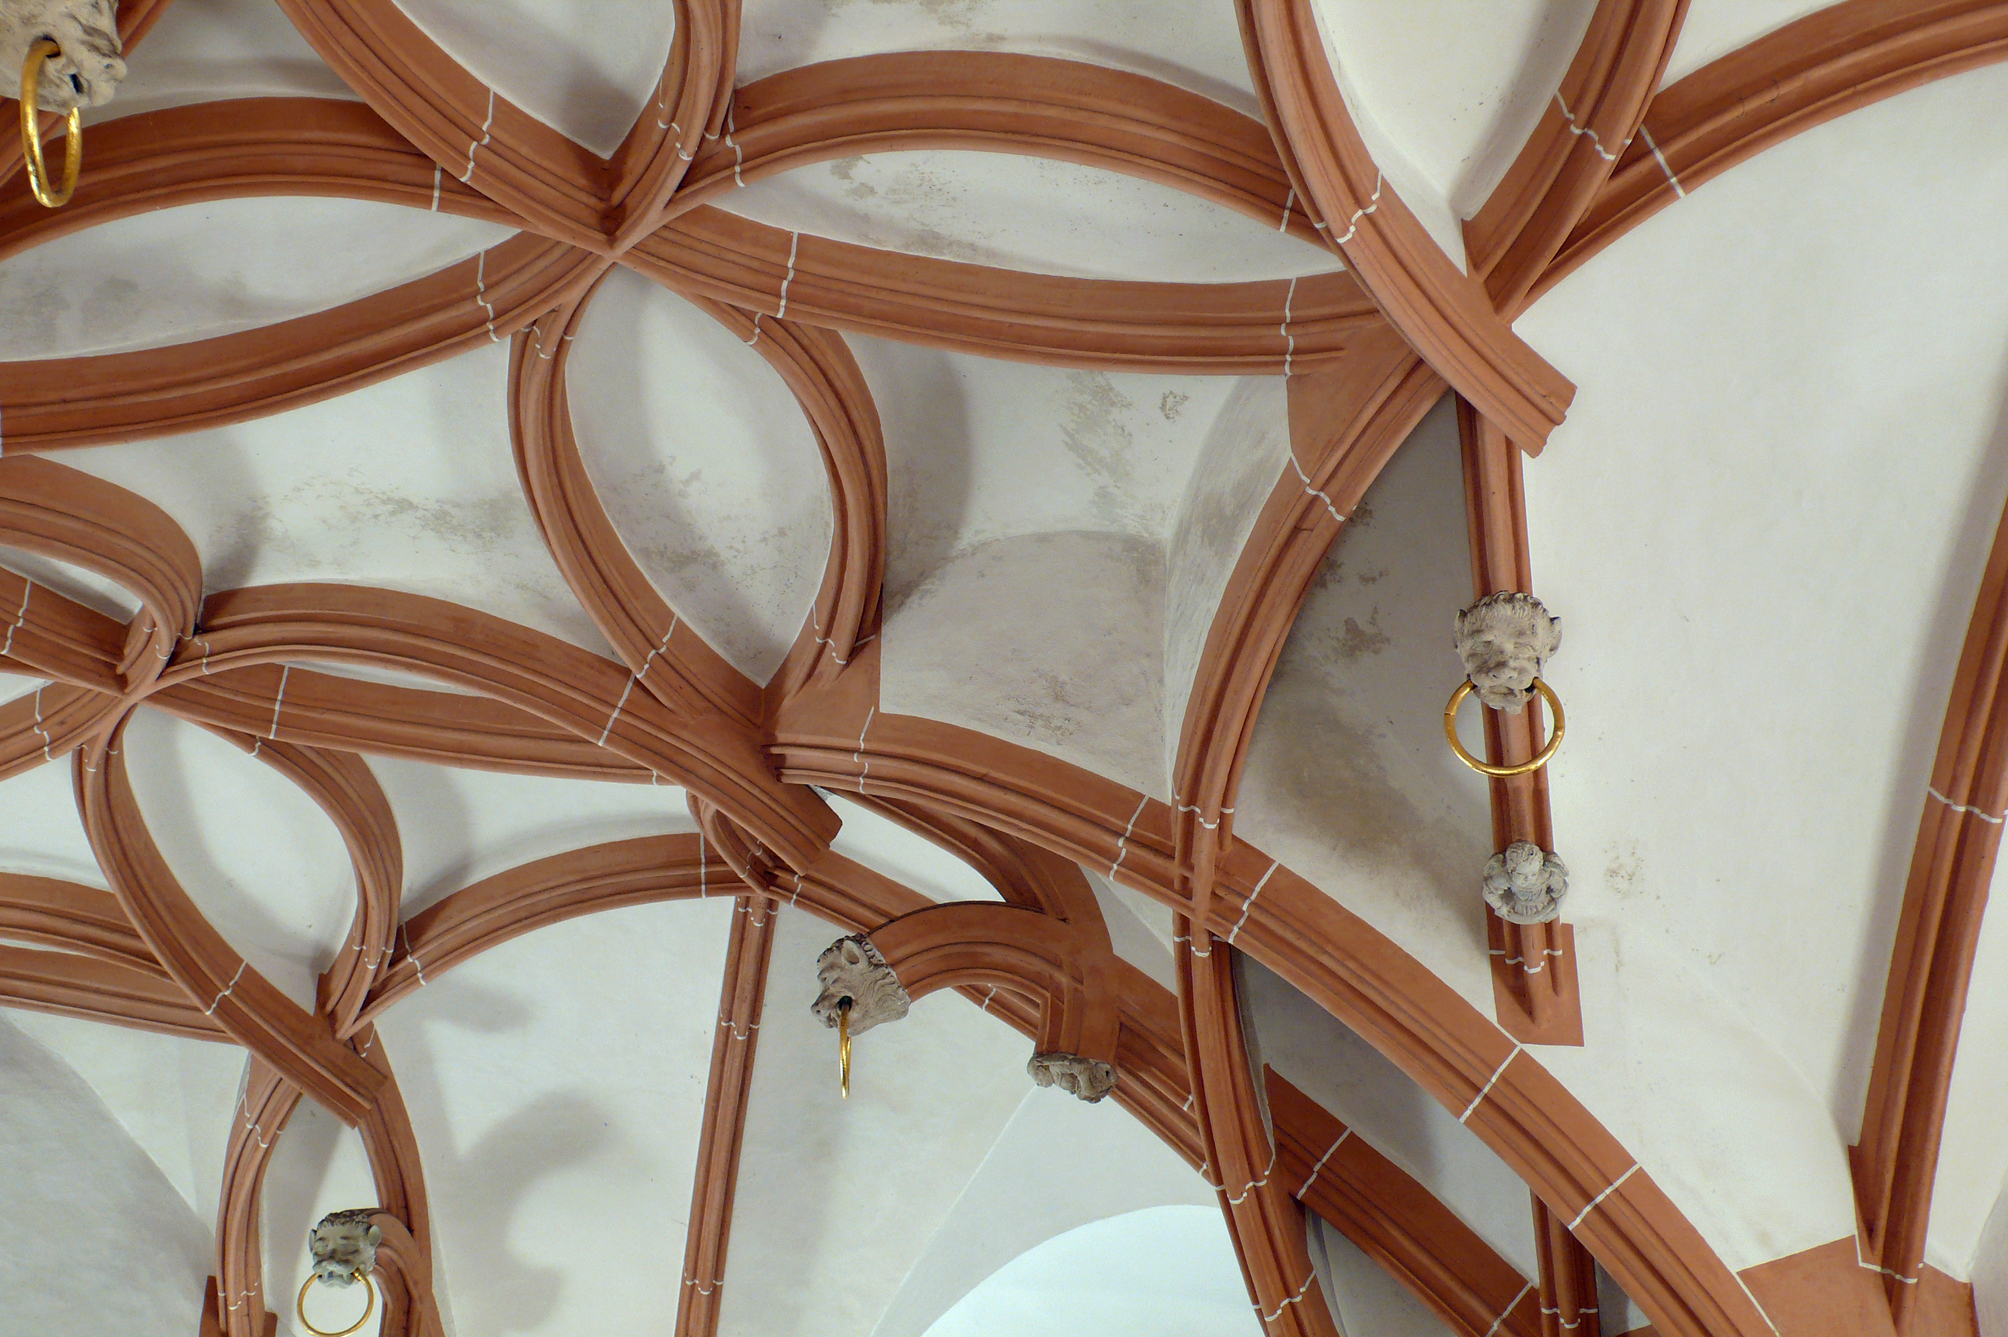 Craftsmen and technicians from the Strasbourg Cathedral restoration workshop replicated the medieval process behind making vaults at St. Anne's Church in Annaberg, Germany. Image credit - María José Ventas